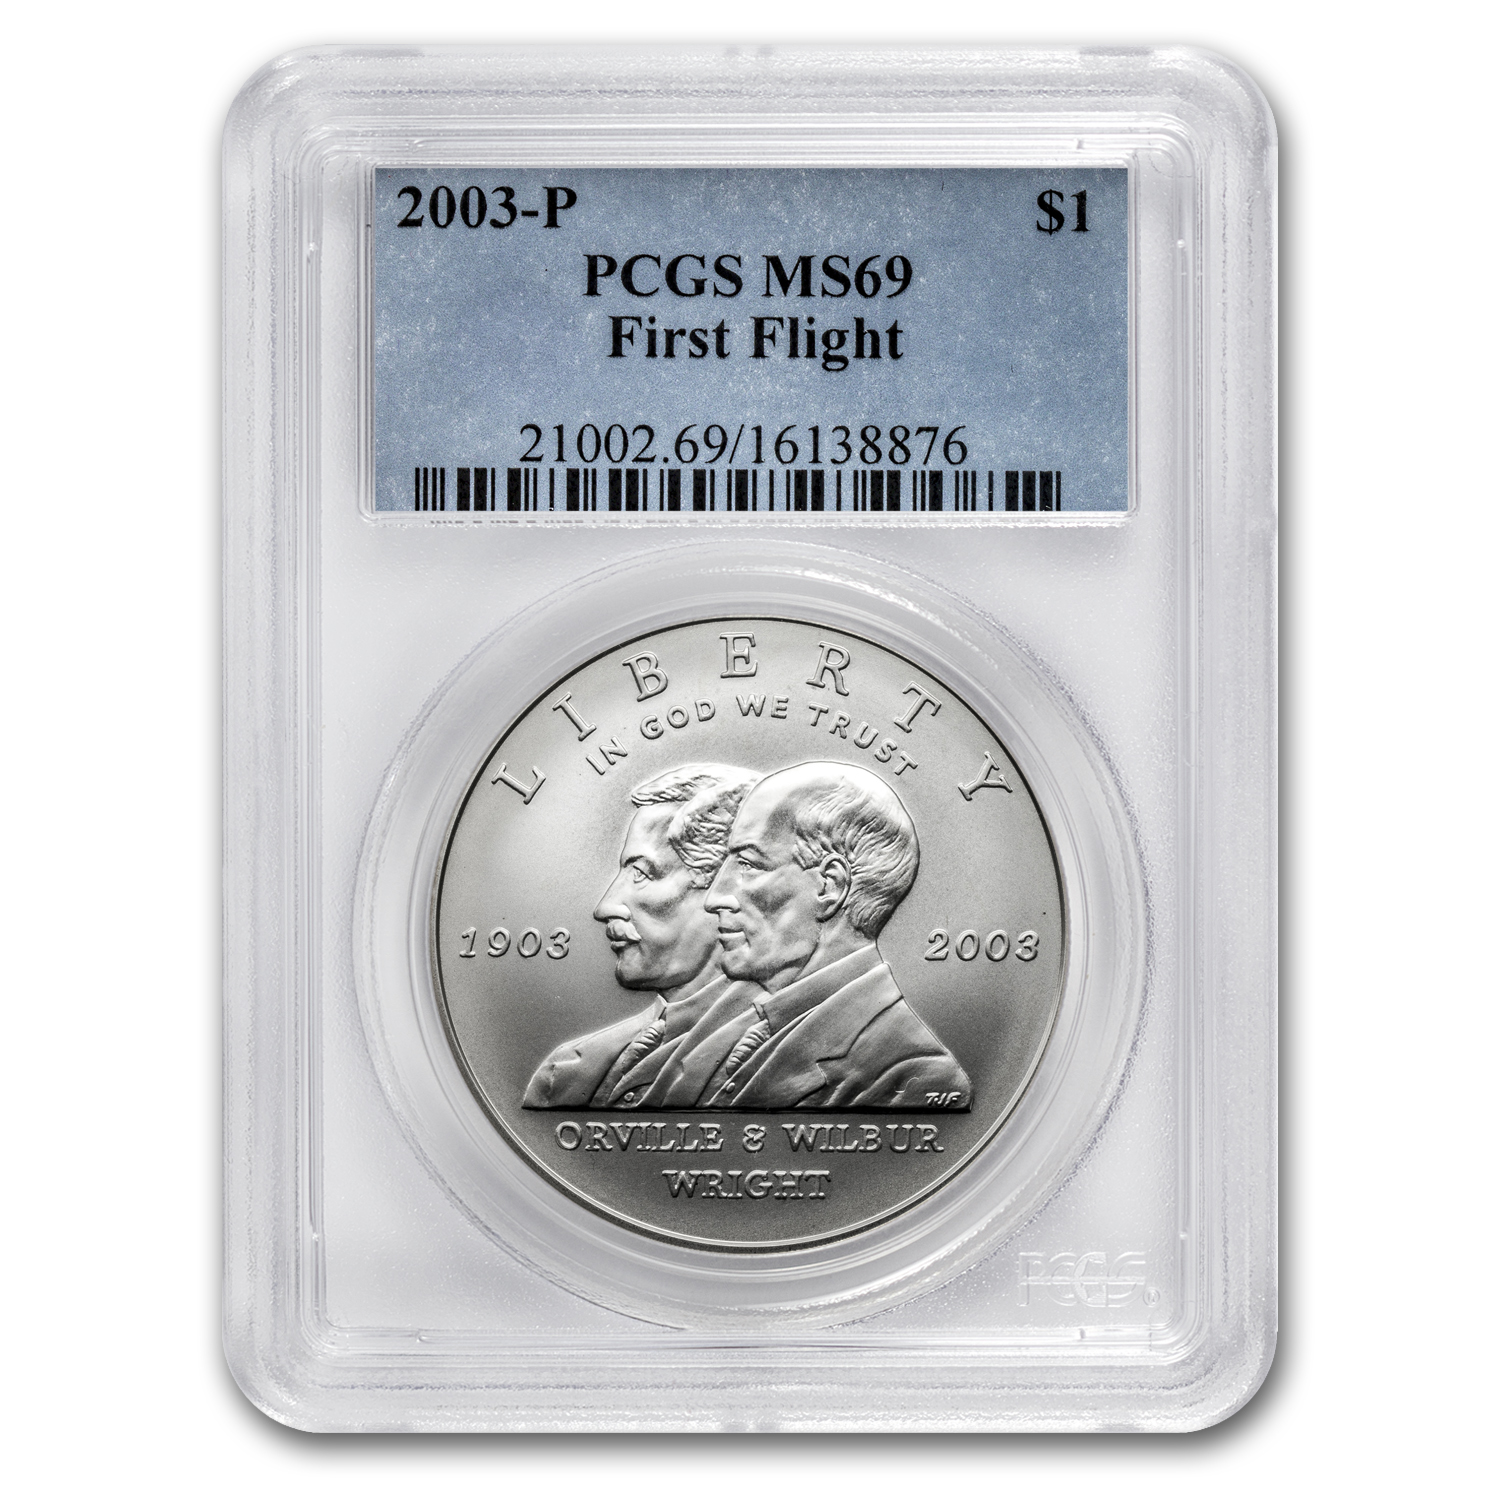 2003-P First Flight Centennial $1 Silver Commem - MS-69 PCGS